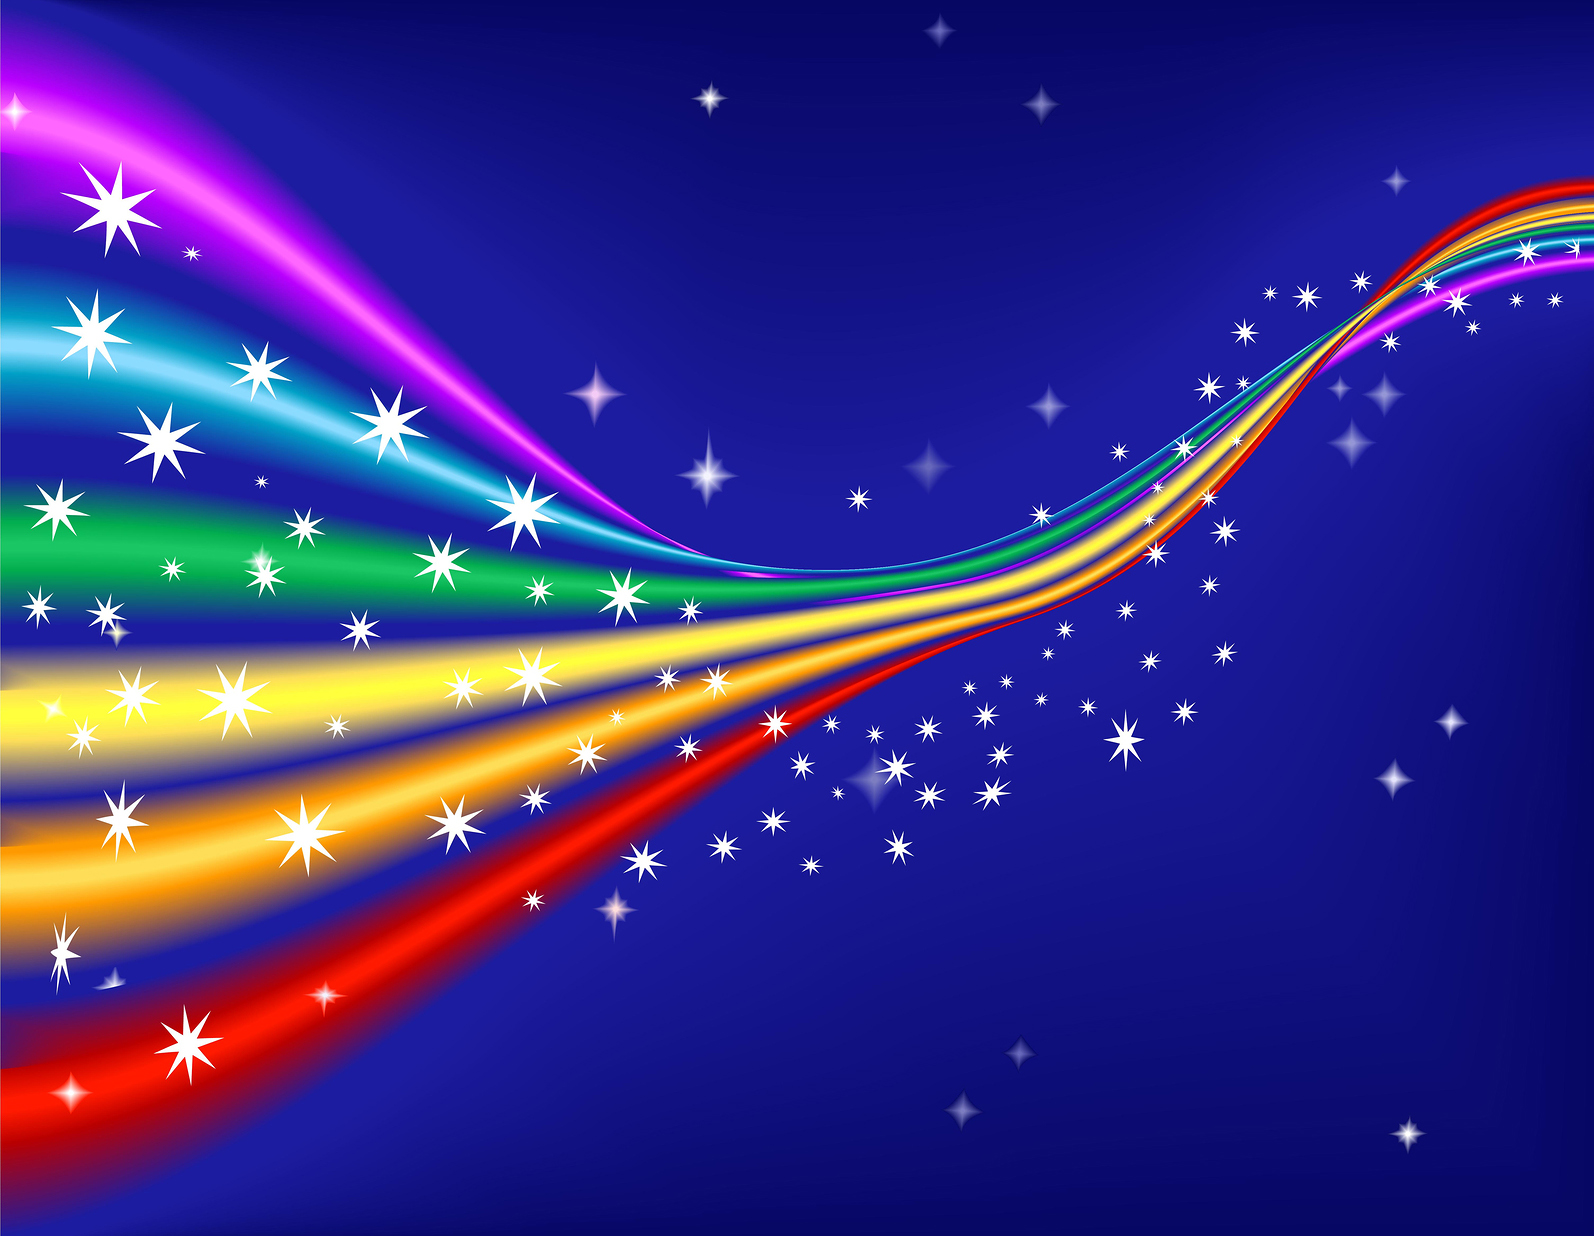 Drawn rainbow ppt Backgrounds PPT Free slides ppt